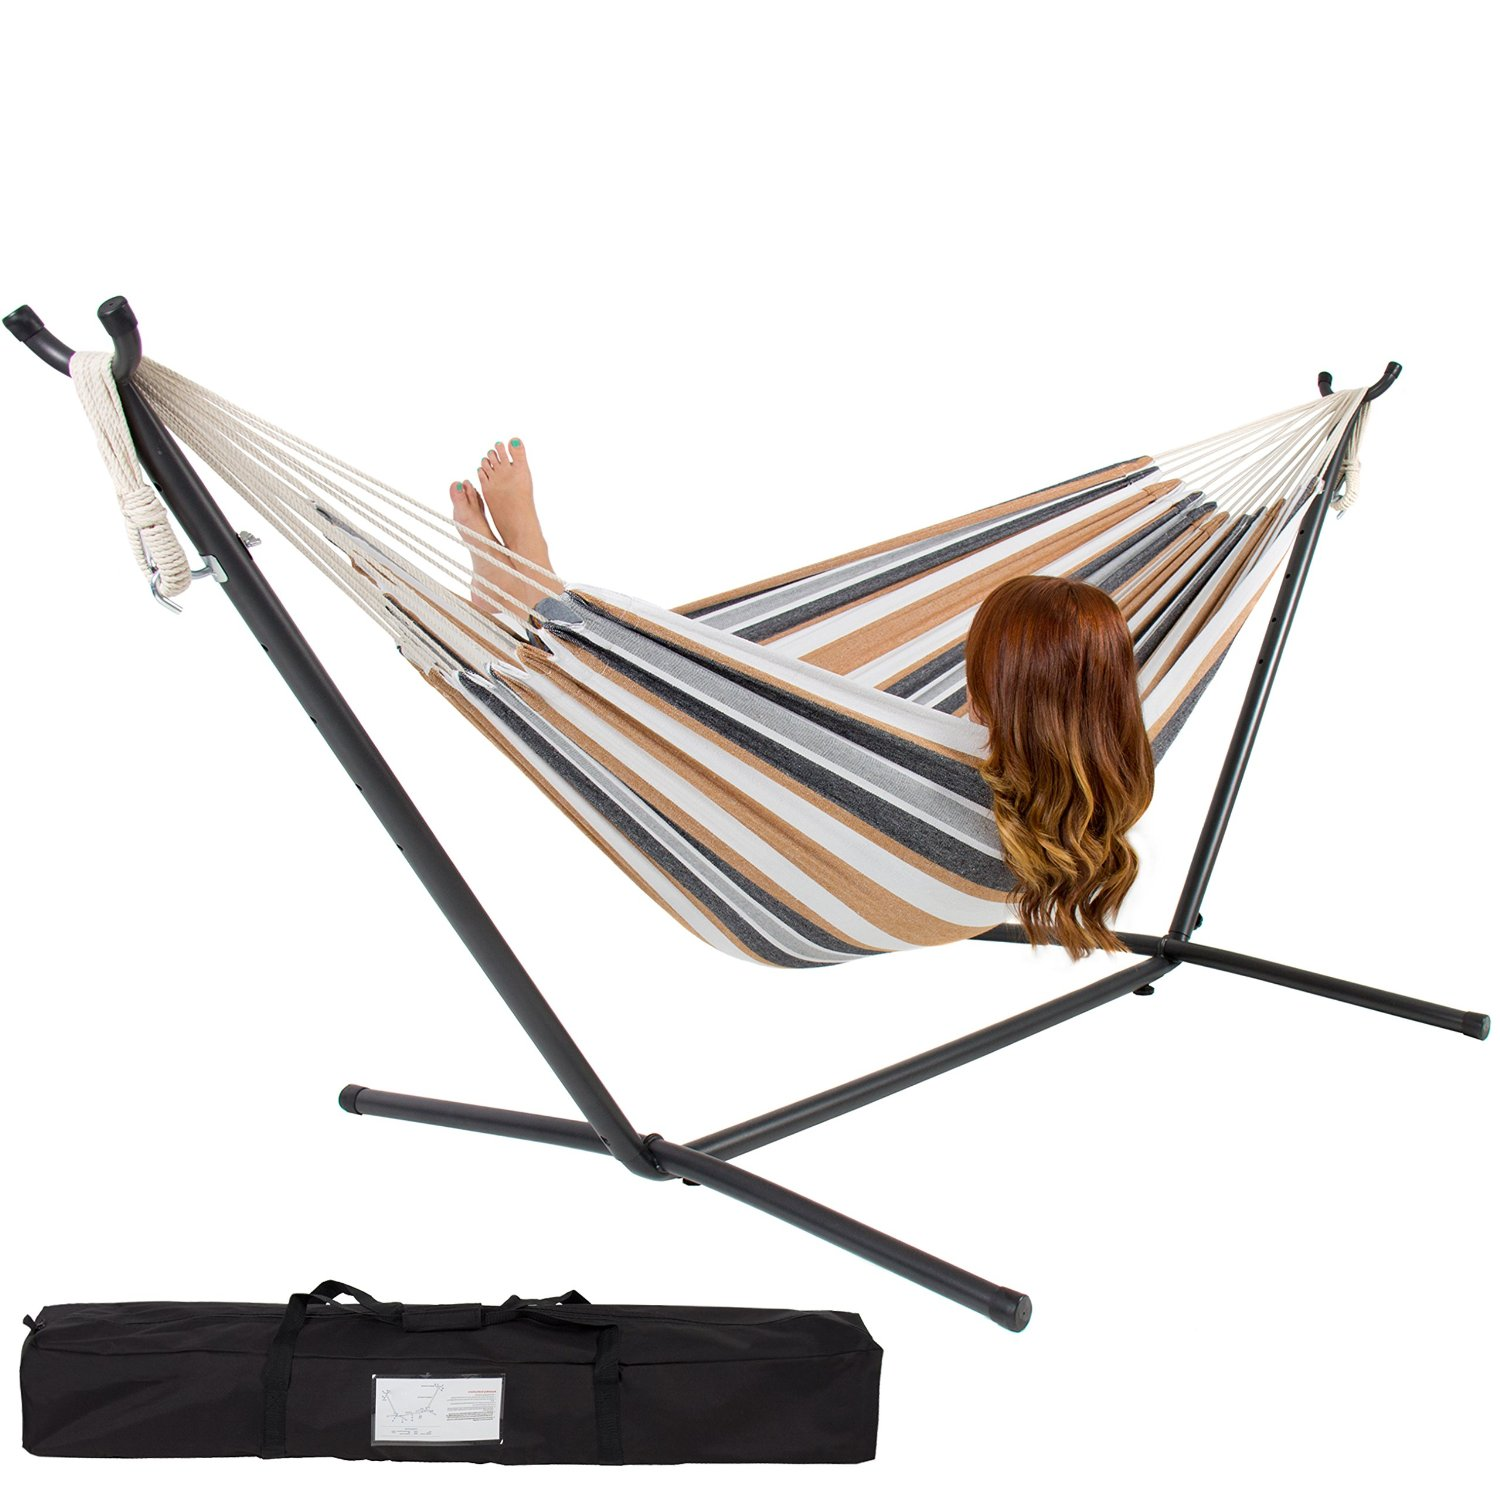 fullres products holds hammock camp double kit vmc bundle kammok that dragonfly degree kmk protection starter roo lbs python